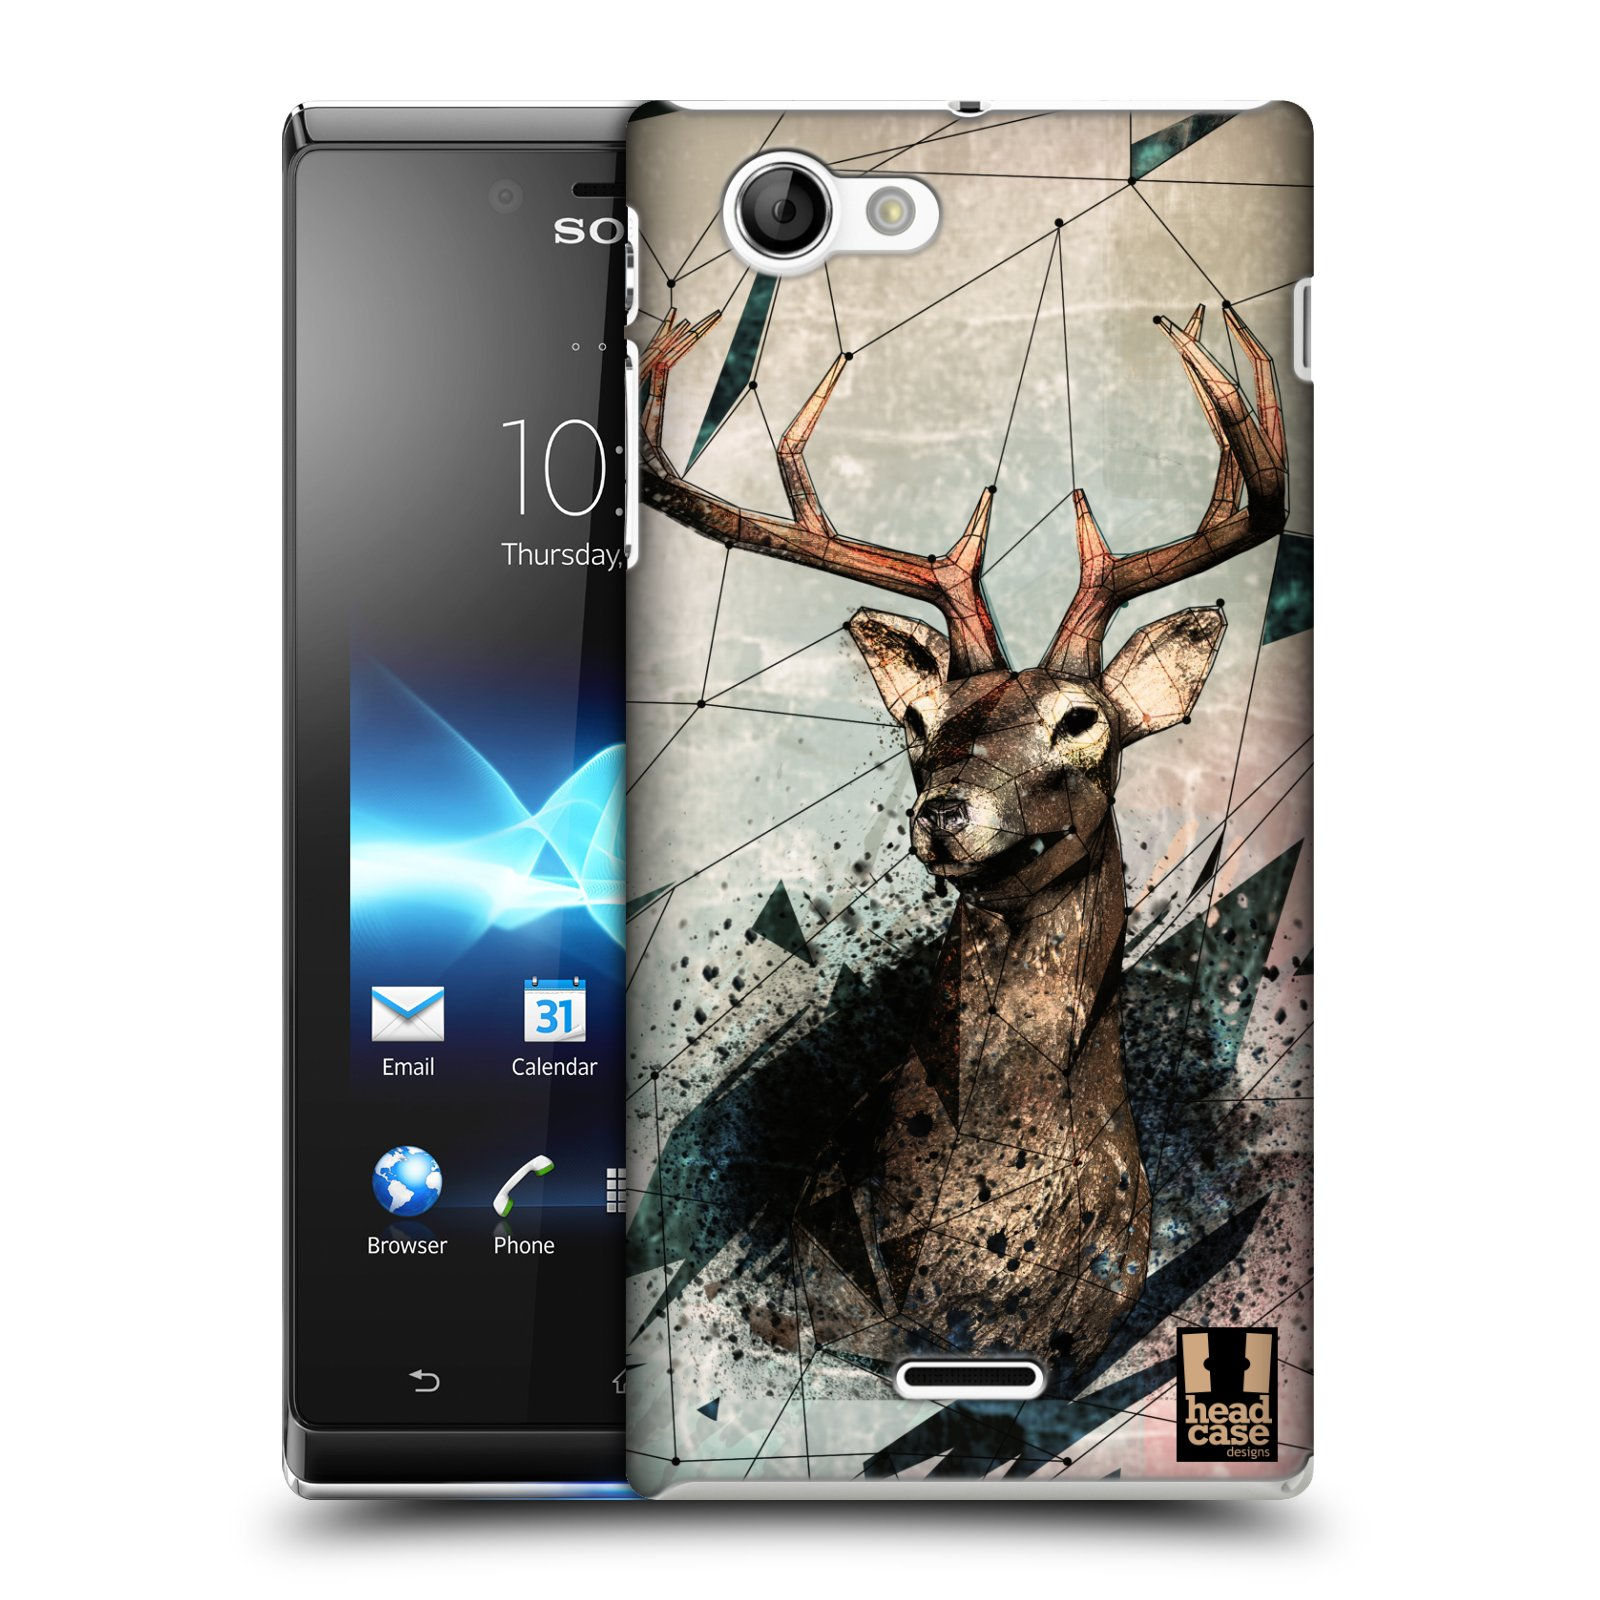 HEAD CASE DESIGNS POLY SKETCH CASE COVER FOR SONY XPERIA J ST26i